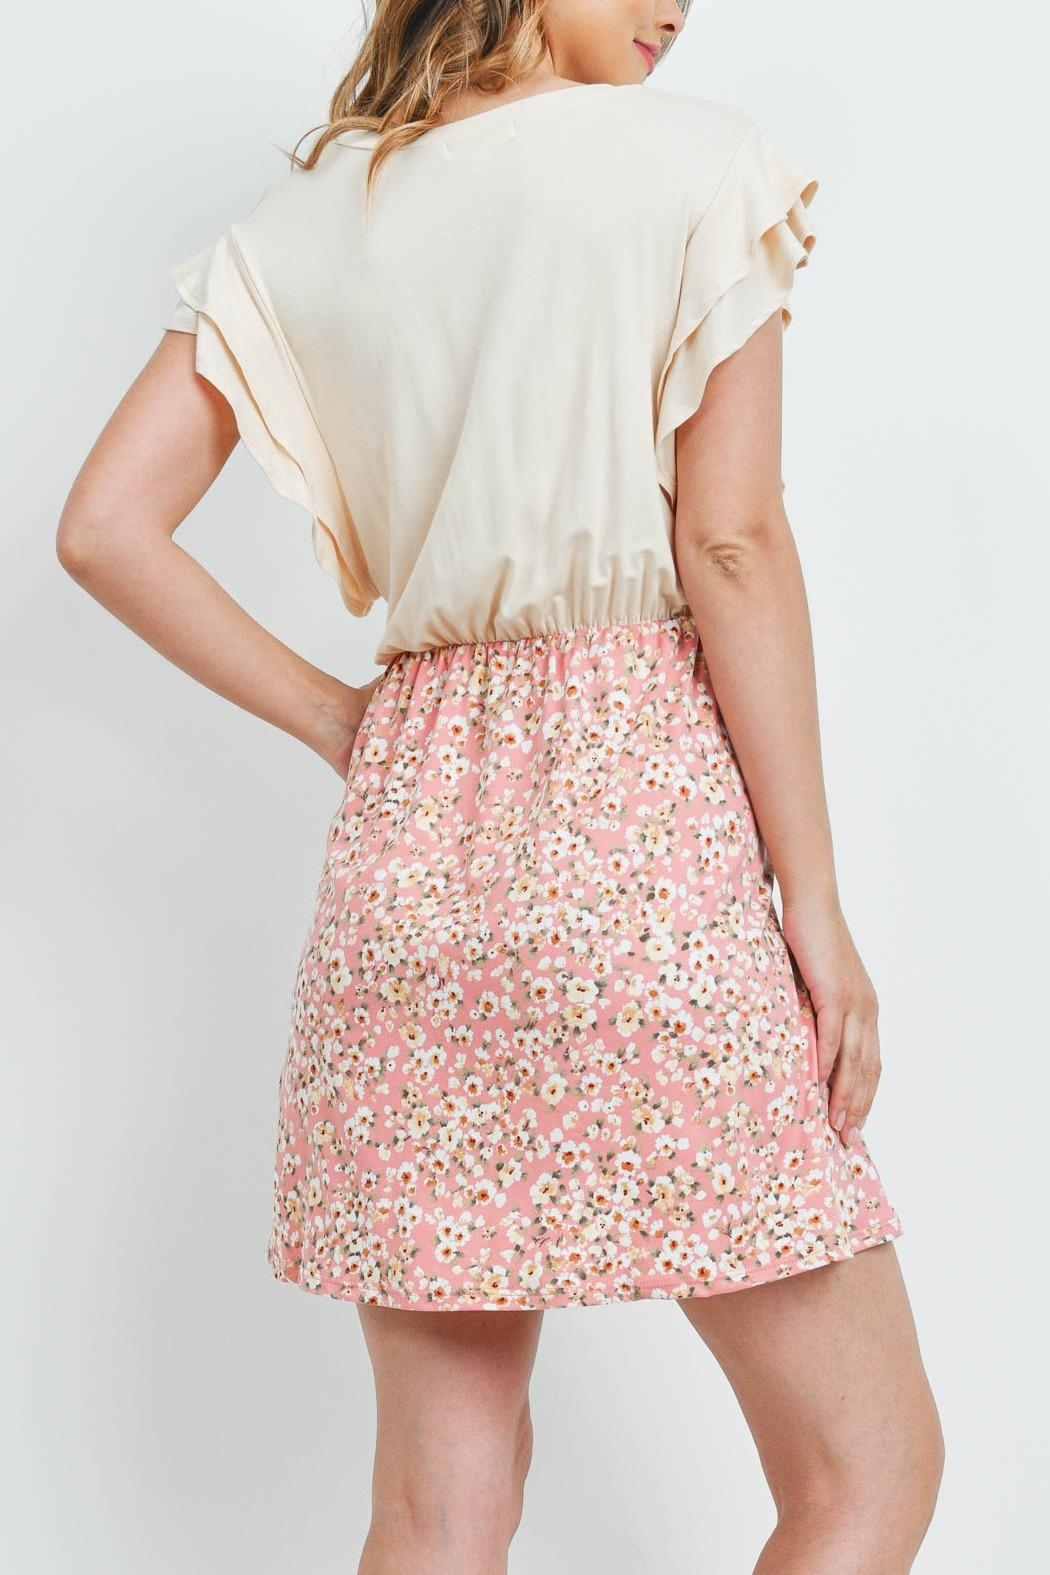 Riah Fashion Cap-Sleeve-Solid-Top-Floral-Contrast-Dress - Front Full Image